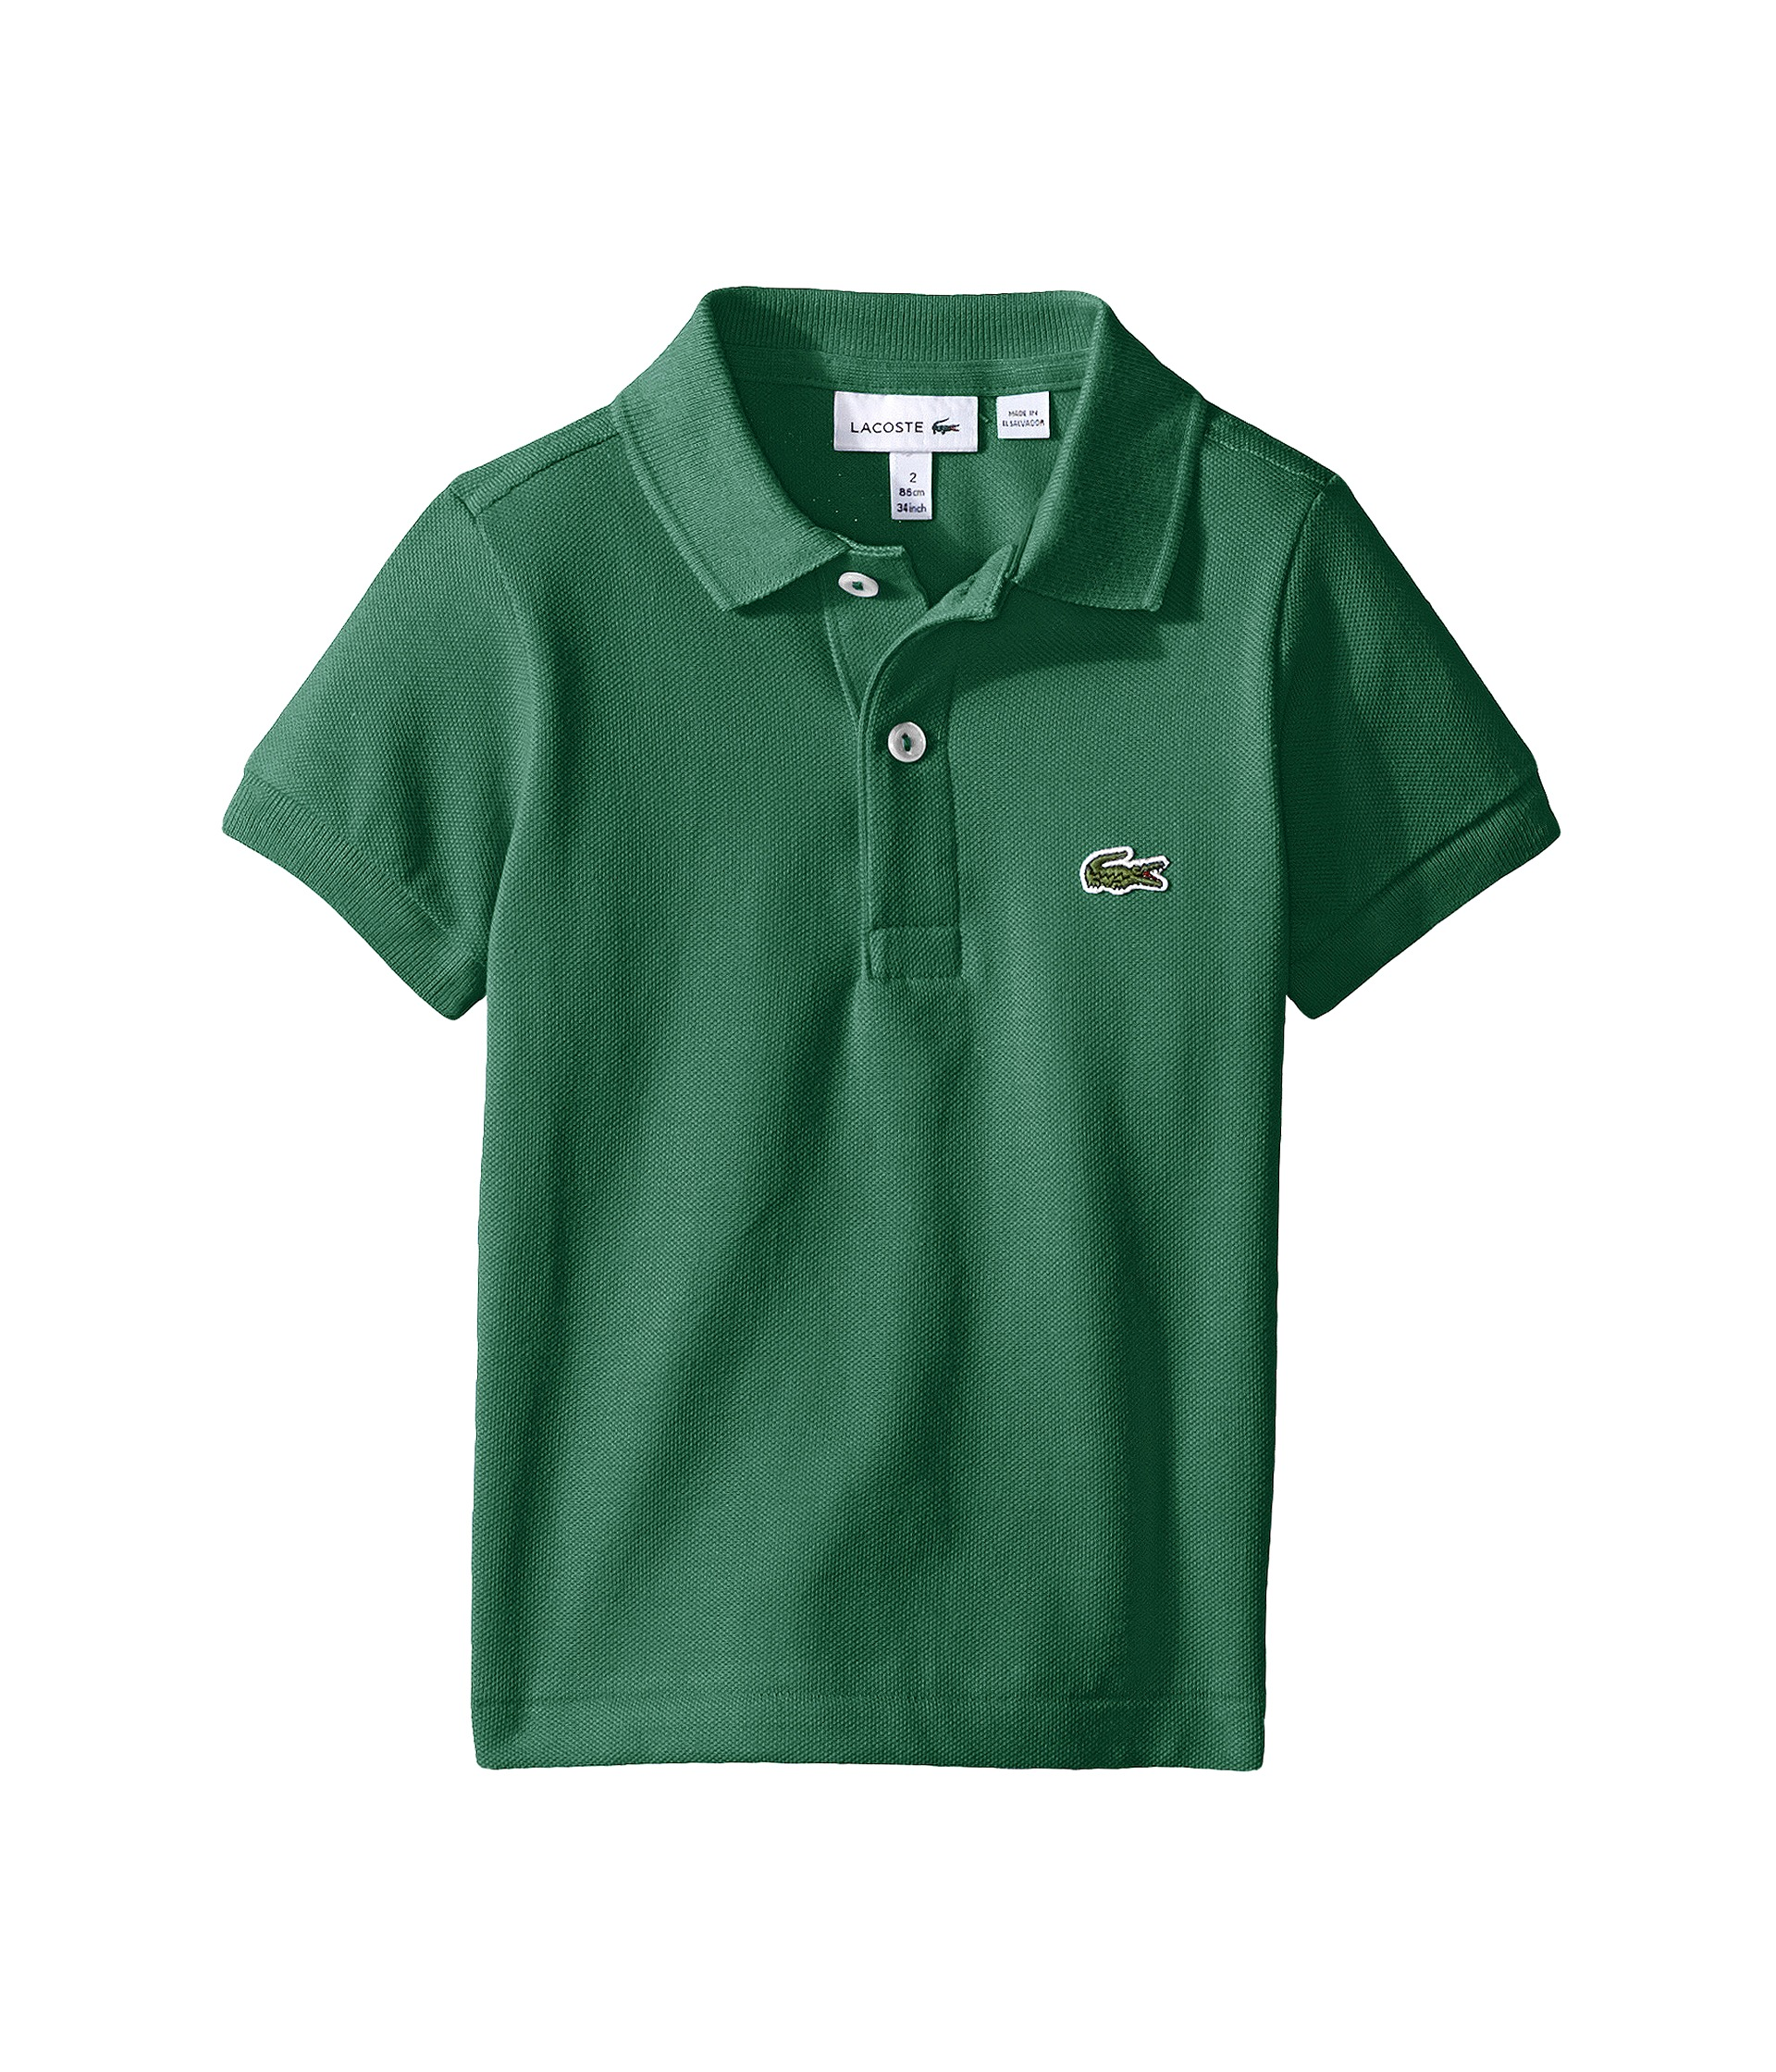 Lacoste kids short sleeve classic pique polo shirt for Toddler boys polo shirts